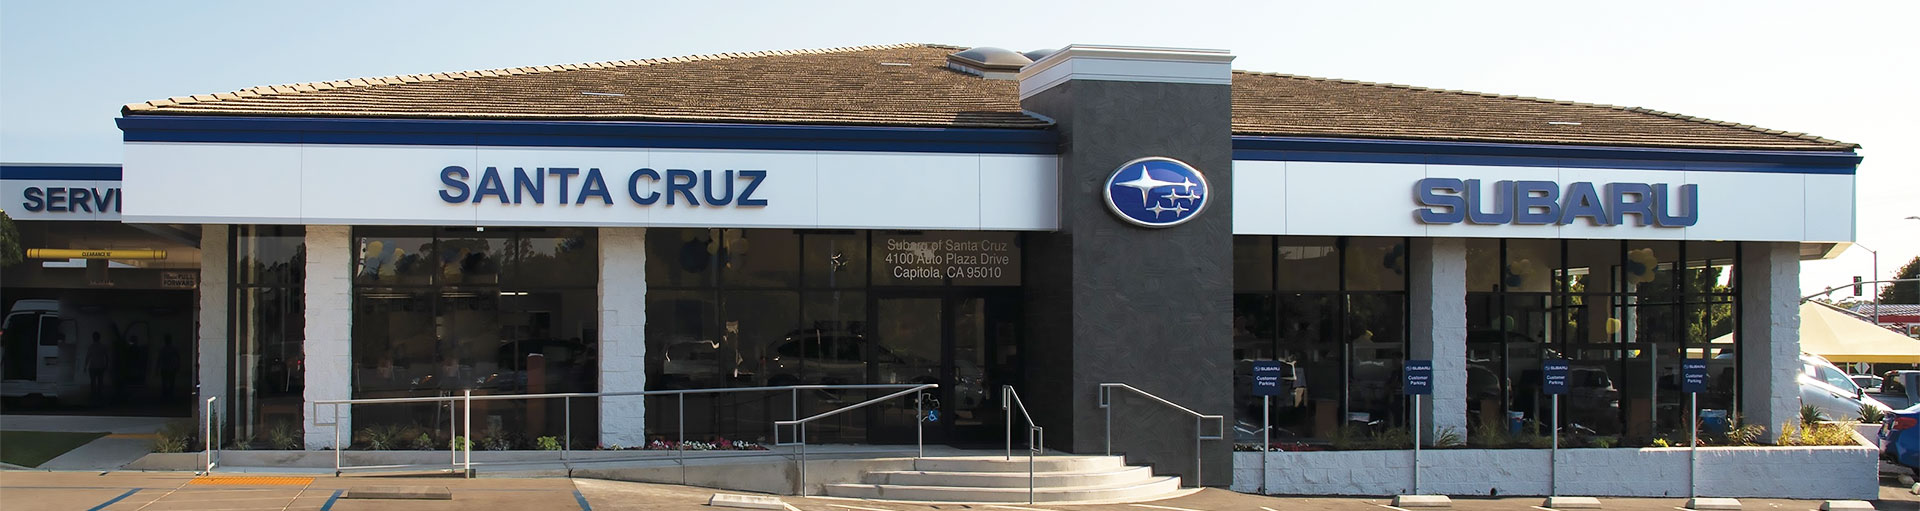 Santa Cruz Subaru Dealership